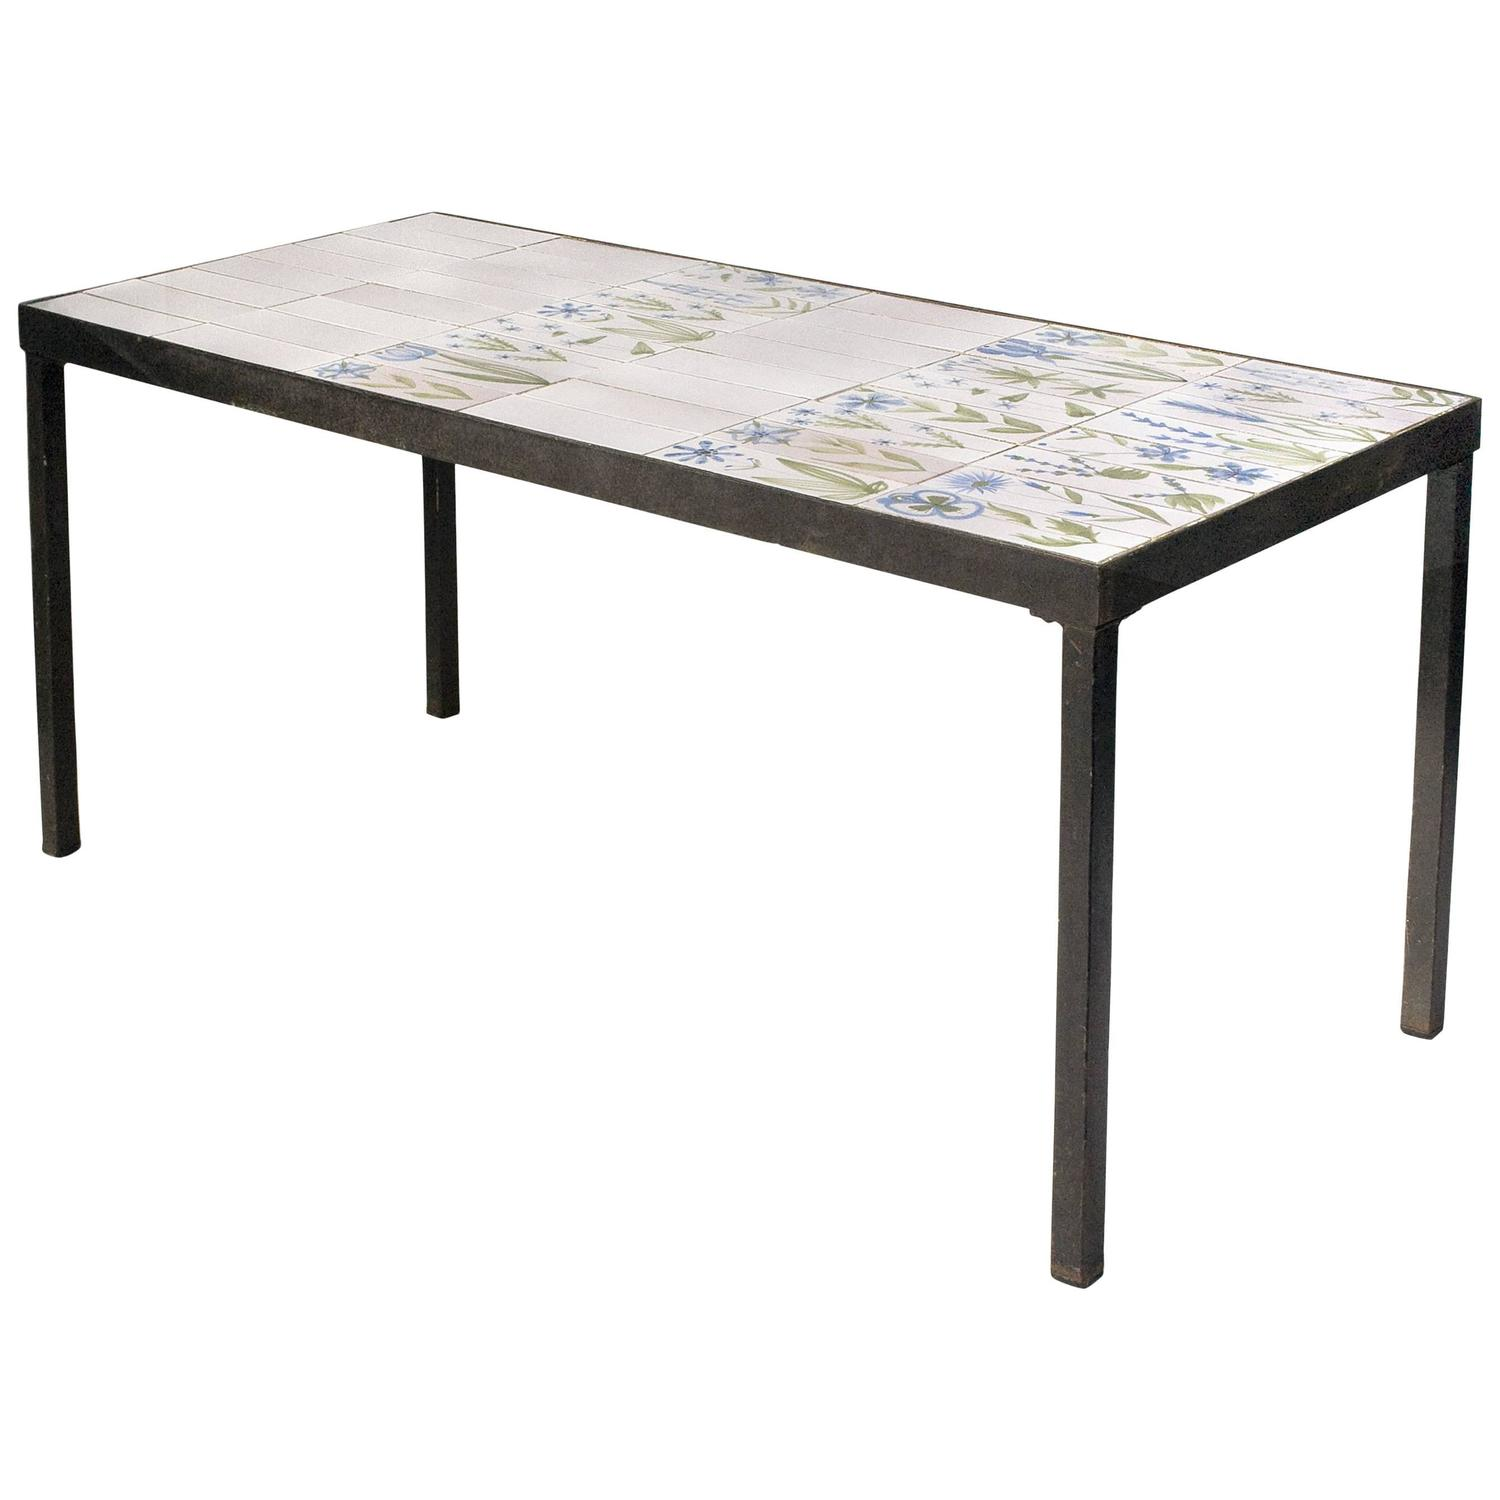 Roger Capron Ceramic Coffee Table, circa 1960, France at 1stdibs